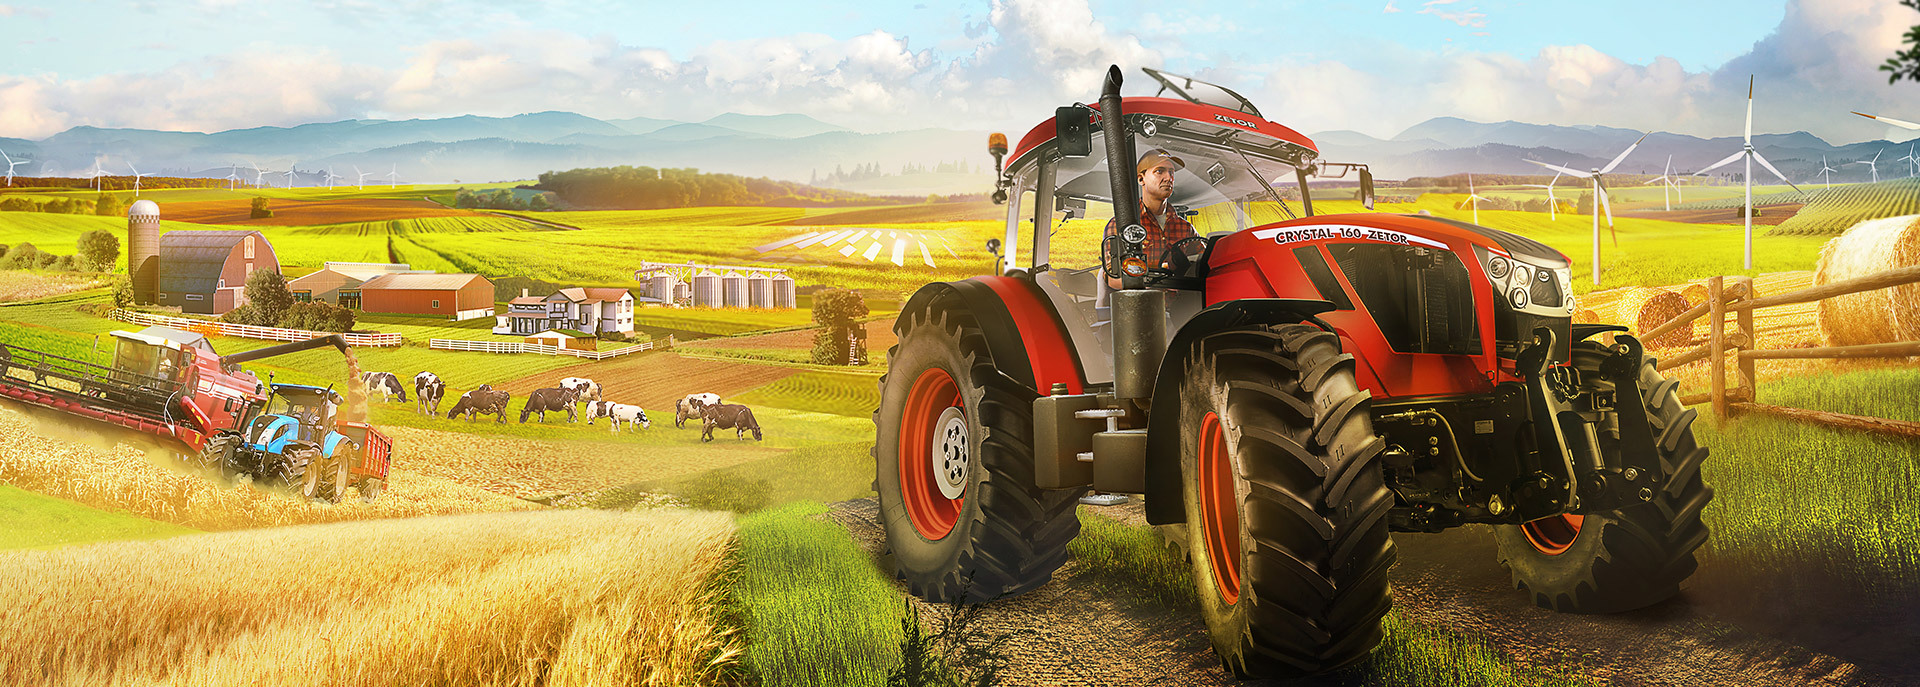 main-pure-farming-201r2j4n.jpg